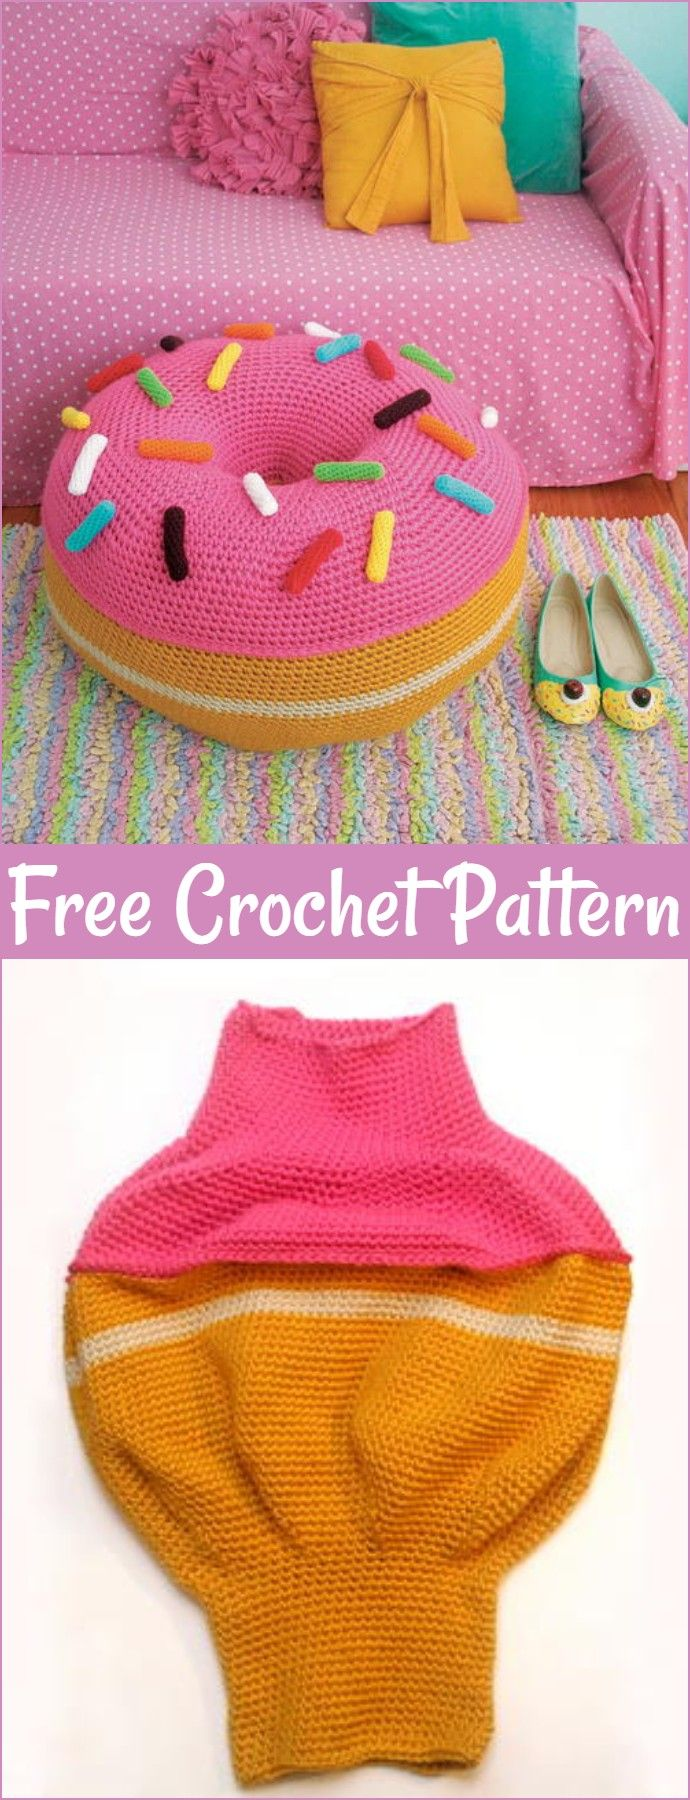 Crochet Pouf Patterns,Free Crochet Sugar High Donut Pouf-It would not be wrong to say that the crochet floor pouf patterns are so much functional and their versatility is unlimited and they are here.#CrochetFloorPouf #crochetpatterns #freecrochetpatterns